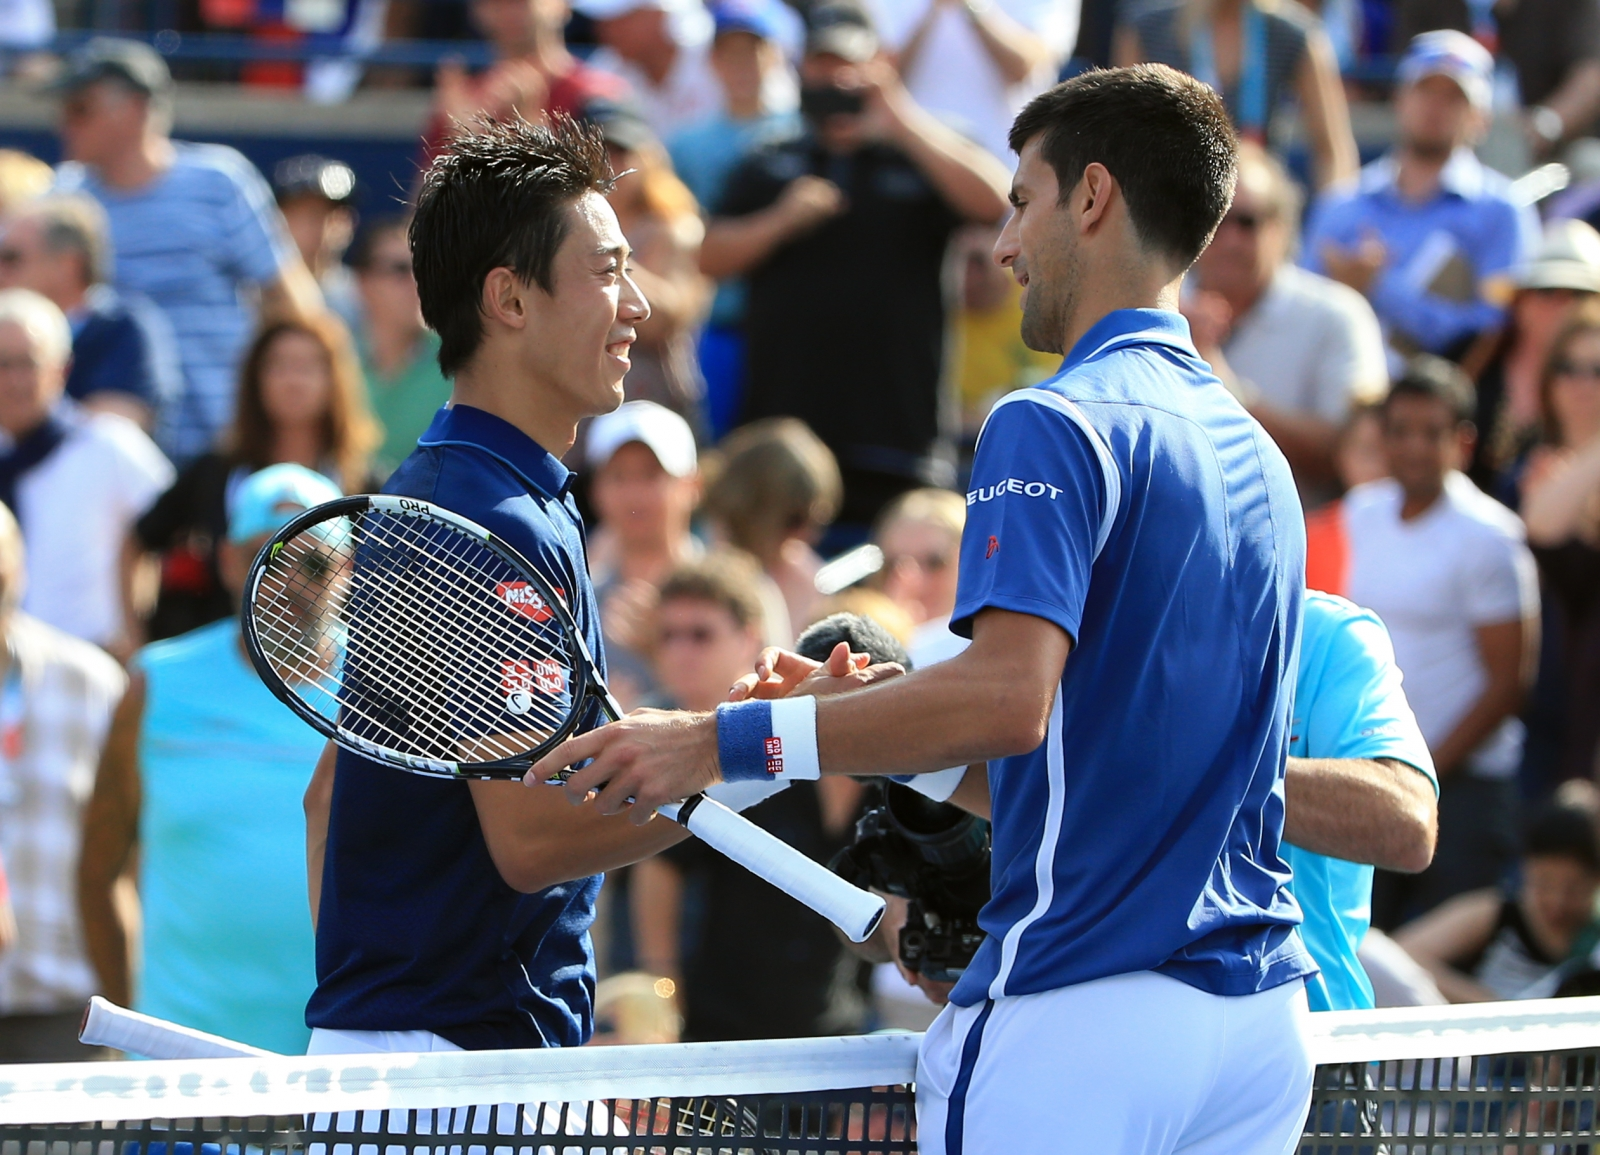 Barclays atp world tour finals 2021 djokovic vs nishikori betting betting bangaraju mp3 songs free download